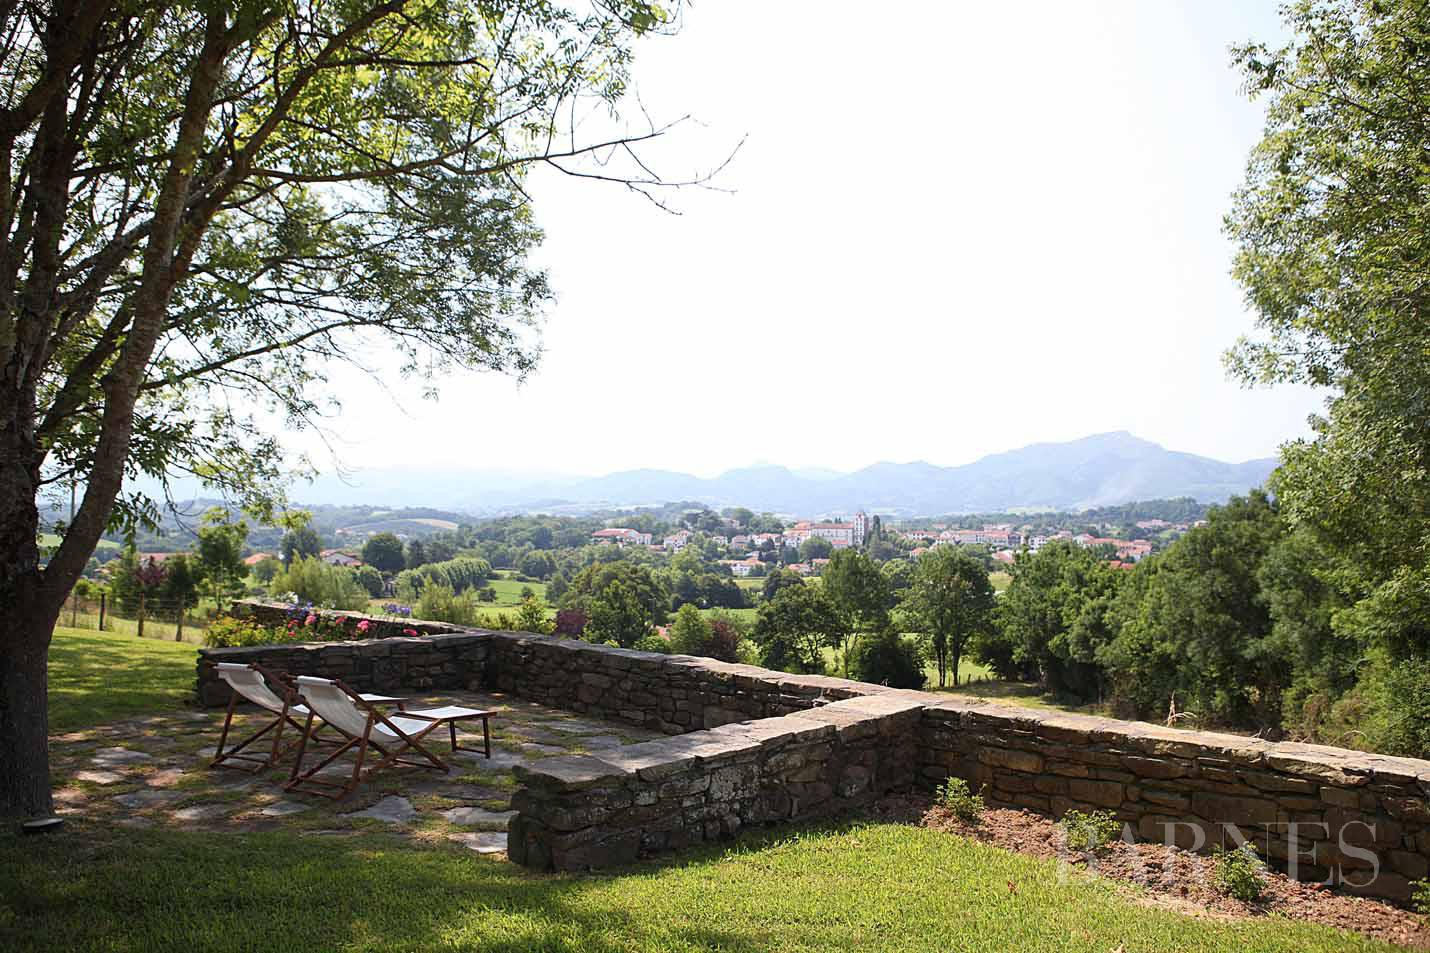 SARE, 20 MINUTES FROM SAINT JEAN DE LUZ, BASQUE STYLE FARMHOUSE WITH HEATED POOL, PANORAMIC MOUNTAIN VIEW picture 2